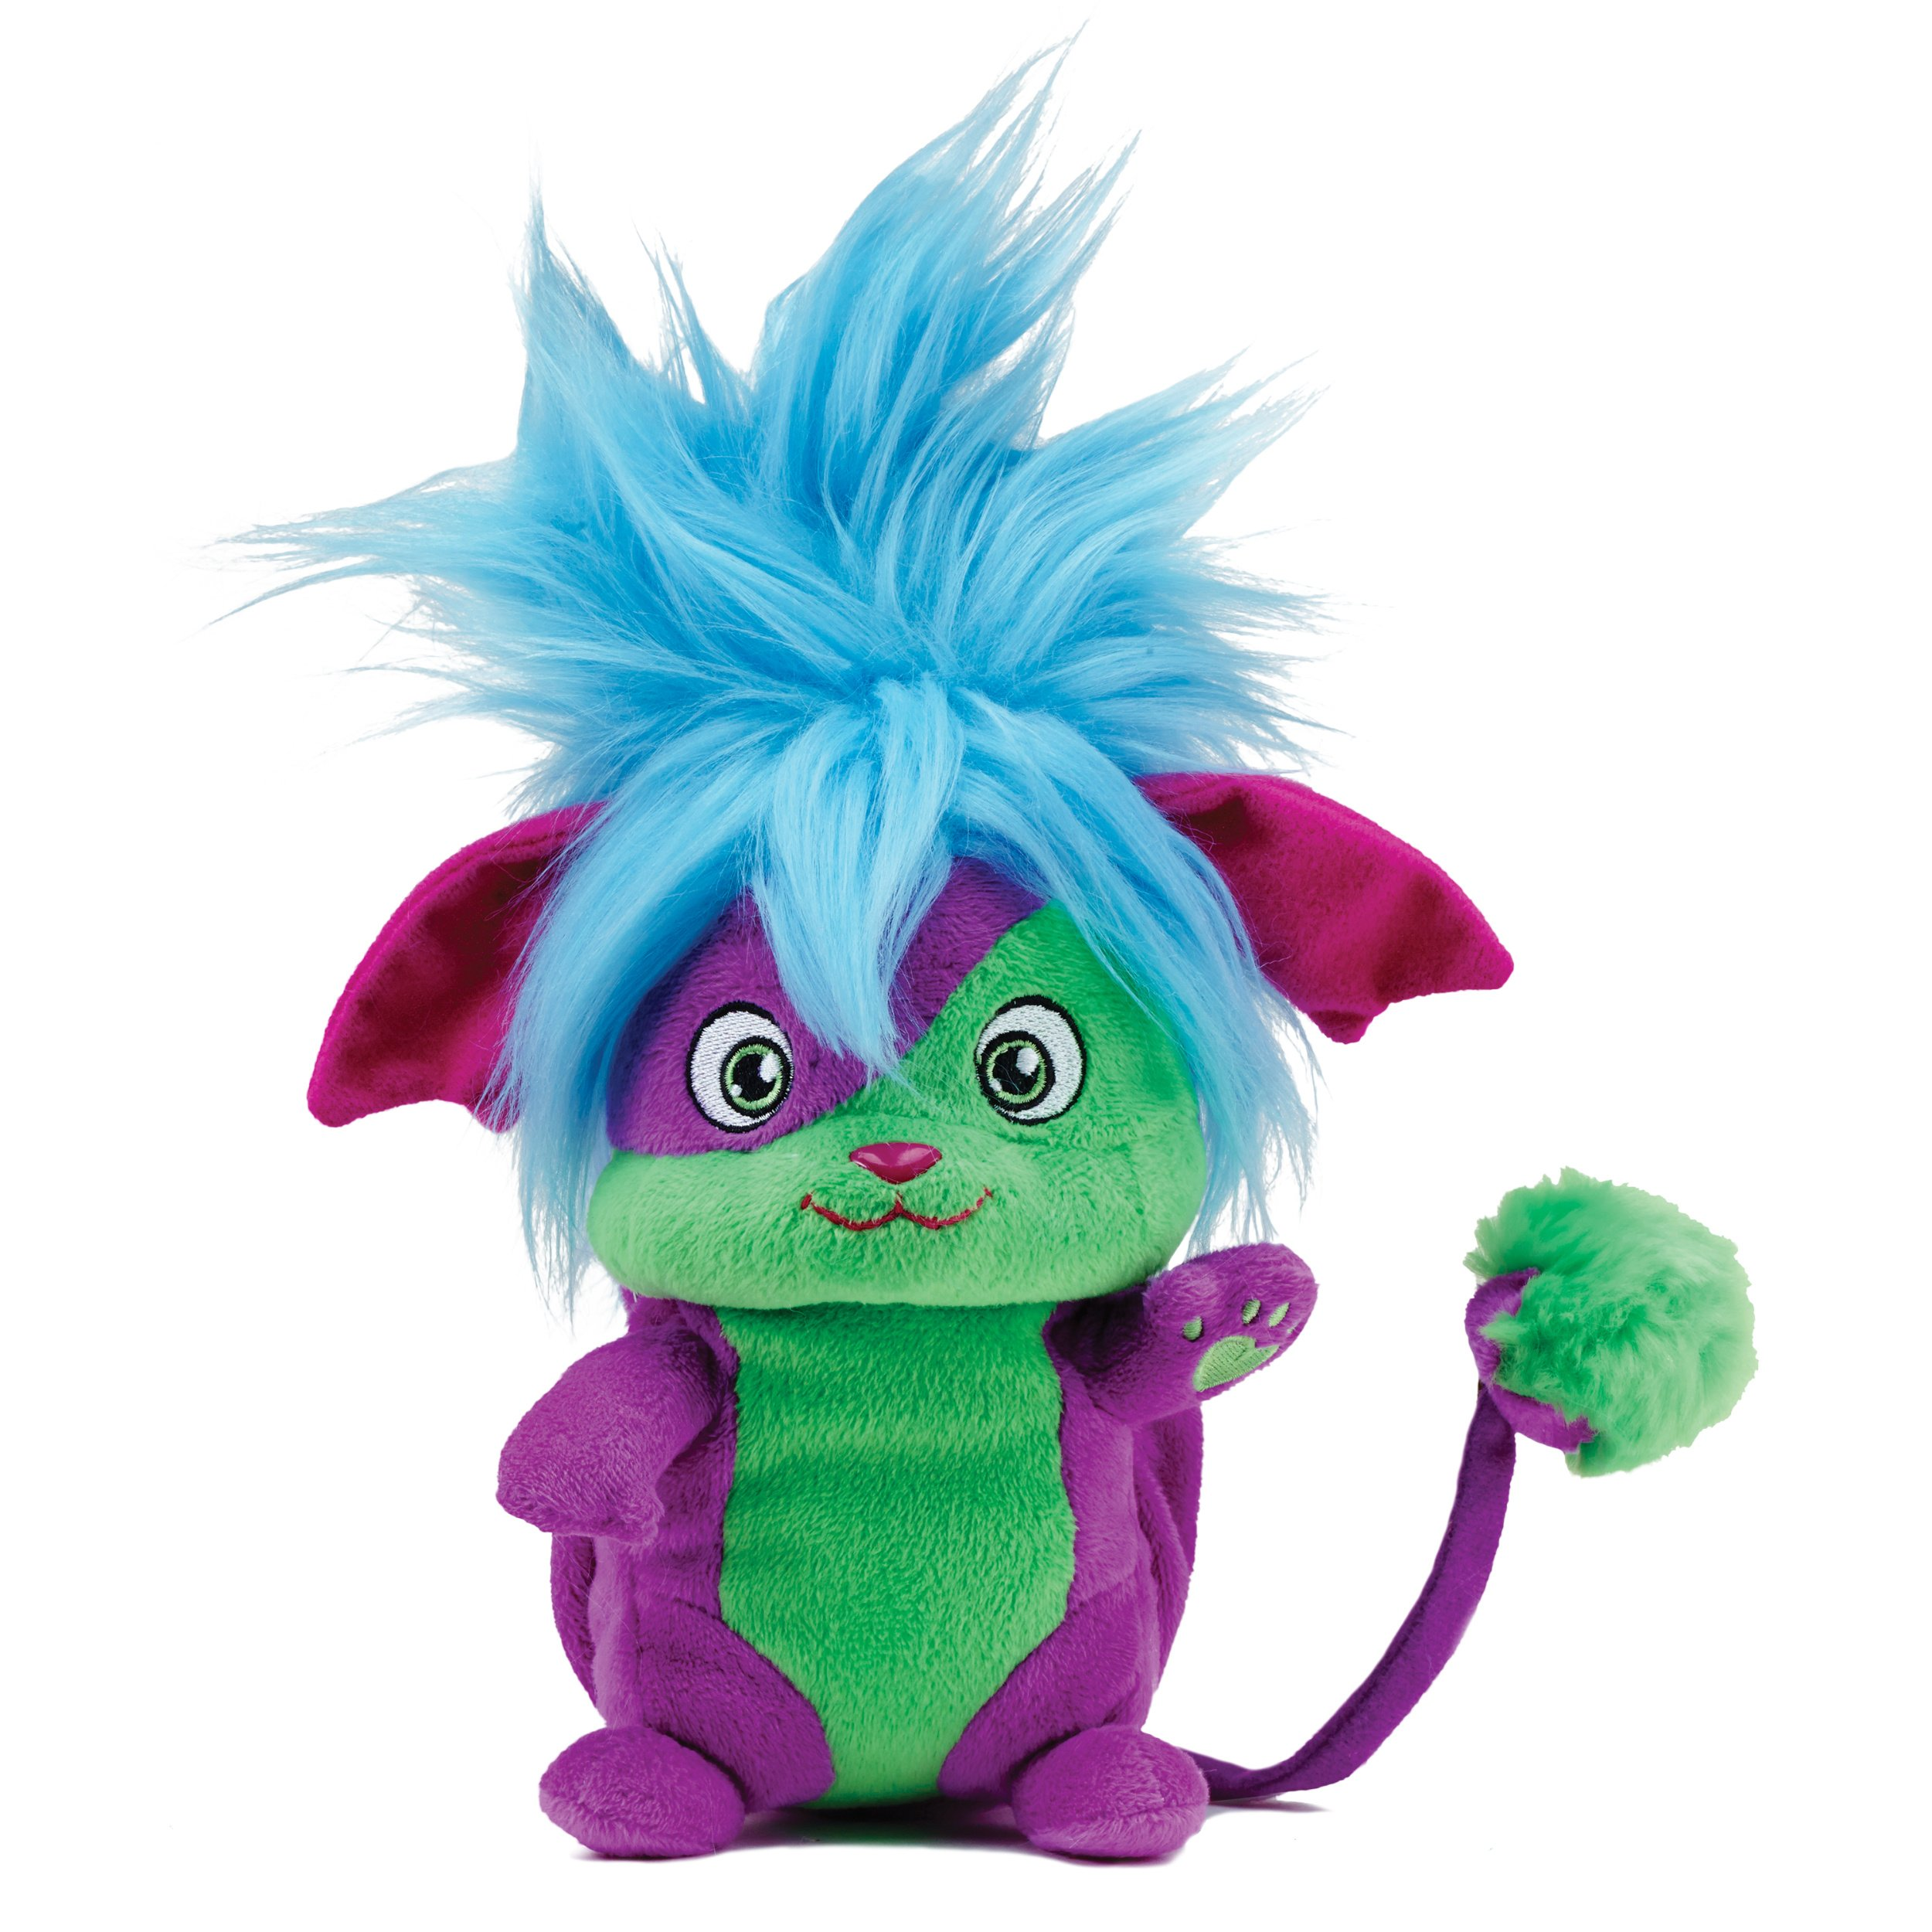 Popples, Yikes 8 Inch Plush by Popples